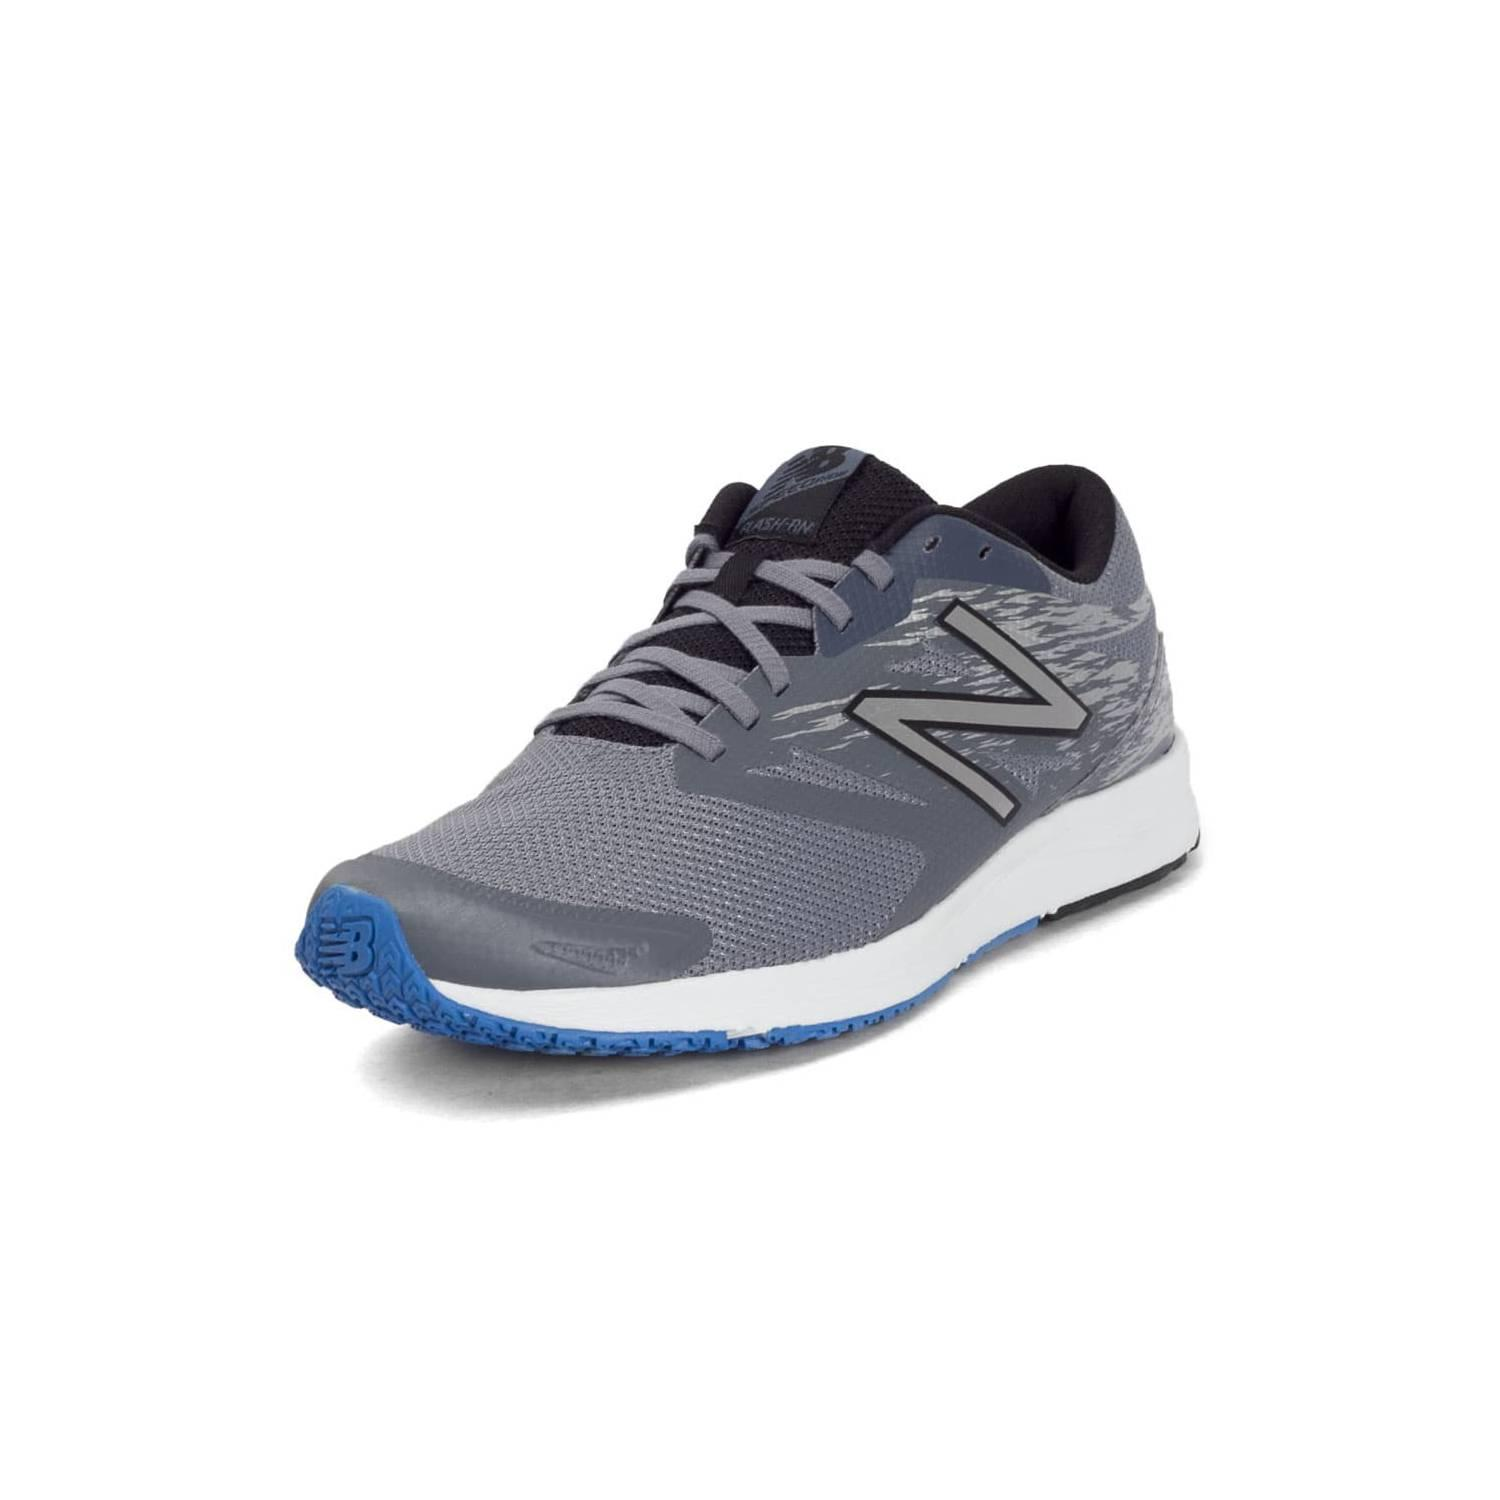 Sepatu Running NB New Balance Flash Series Original - ABU ABU, 41